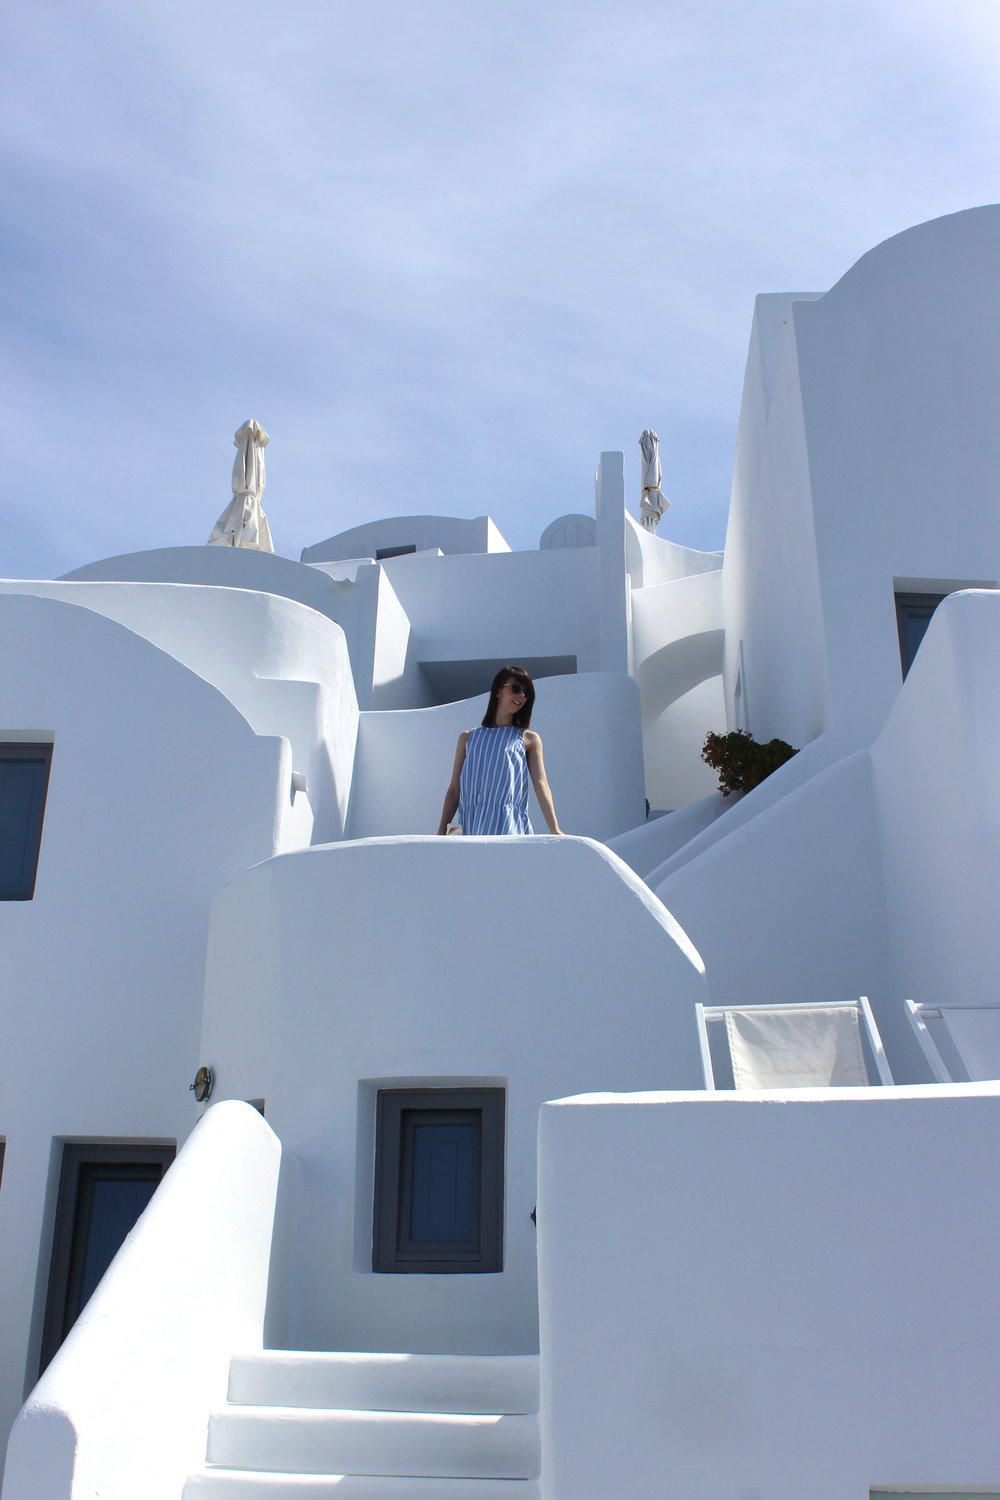 Standing amongst the whitewashed buildings in Santorini.